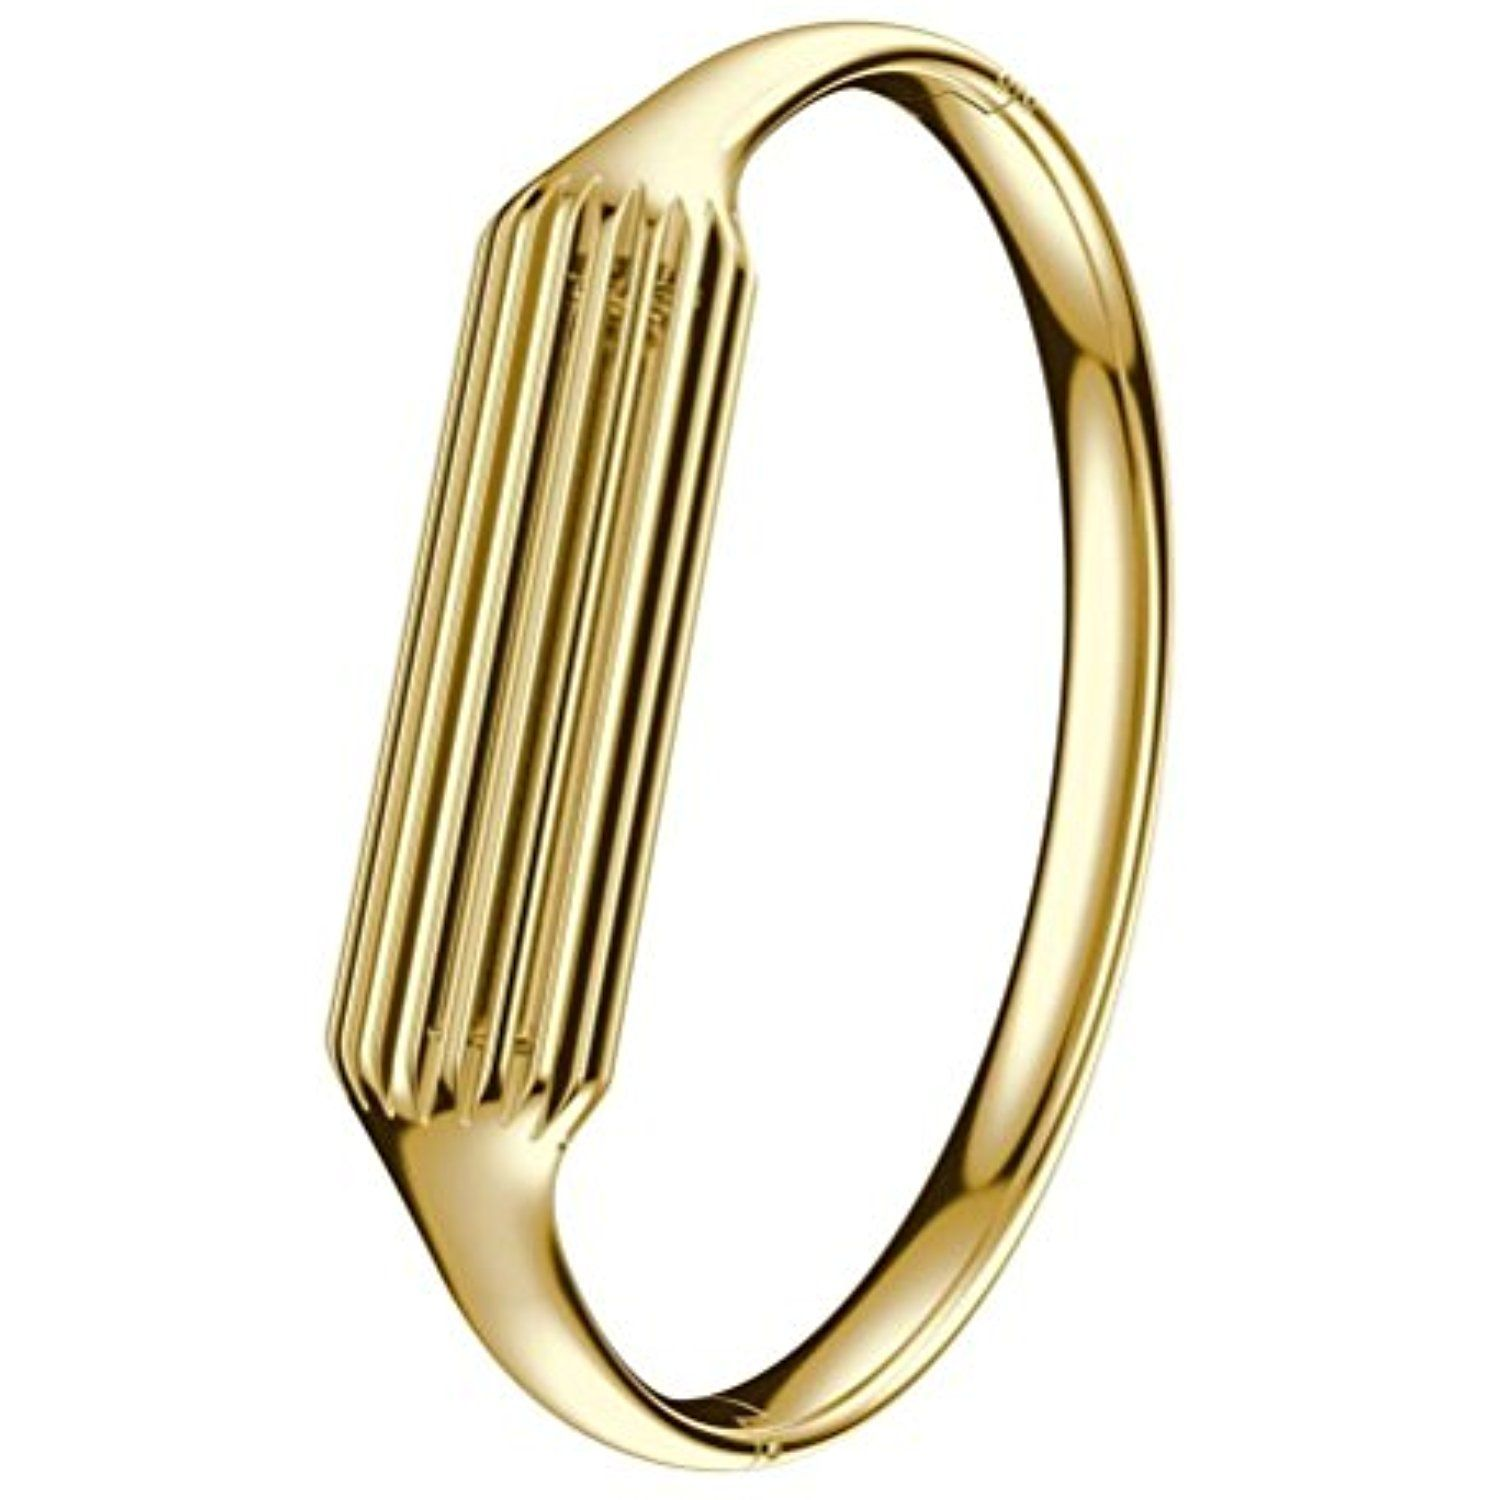 Elobeth for fitbit flex bands fashion accessory bangle for fitbit